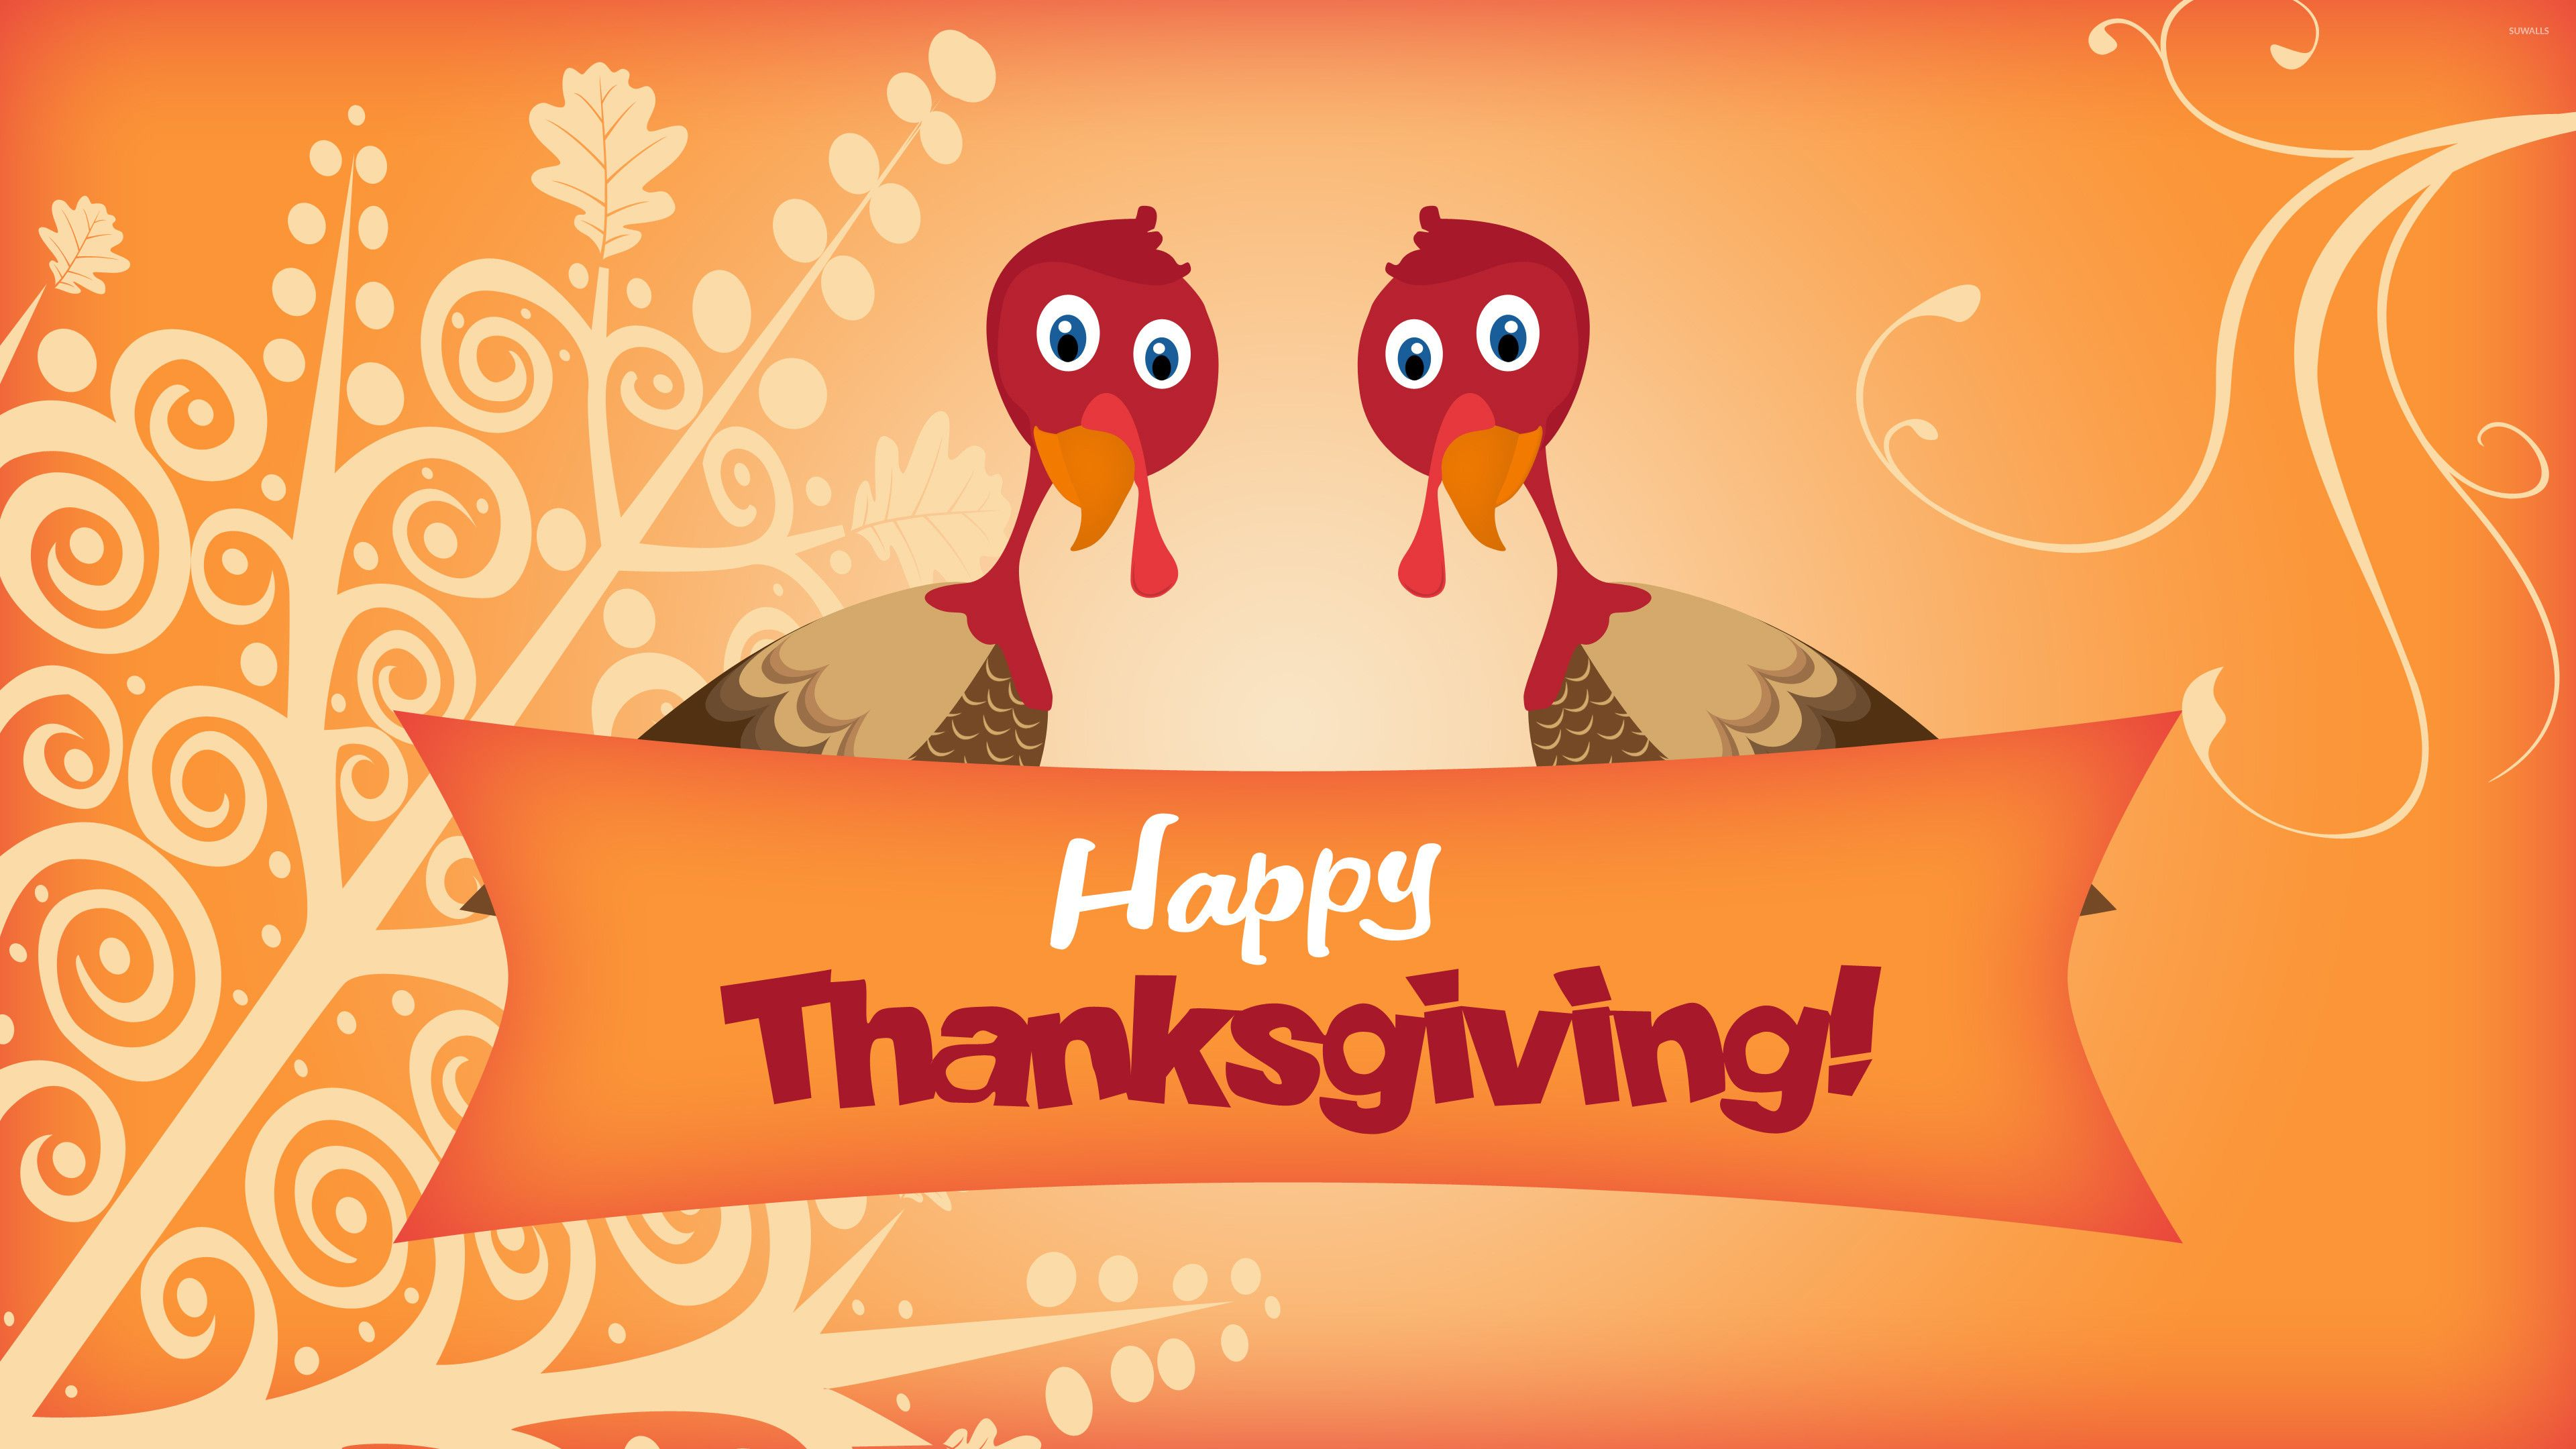 Happy Thanksgiving Wallpapers